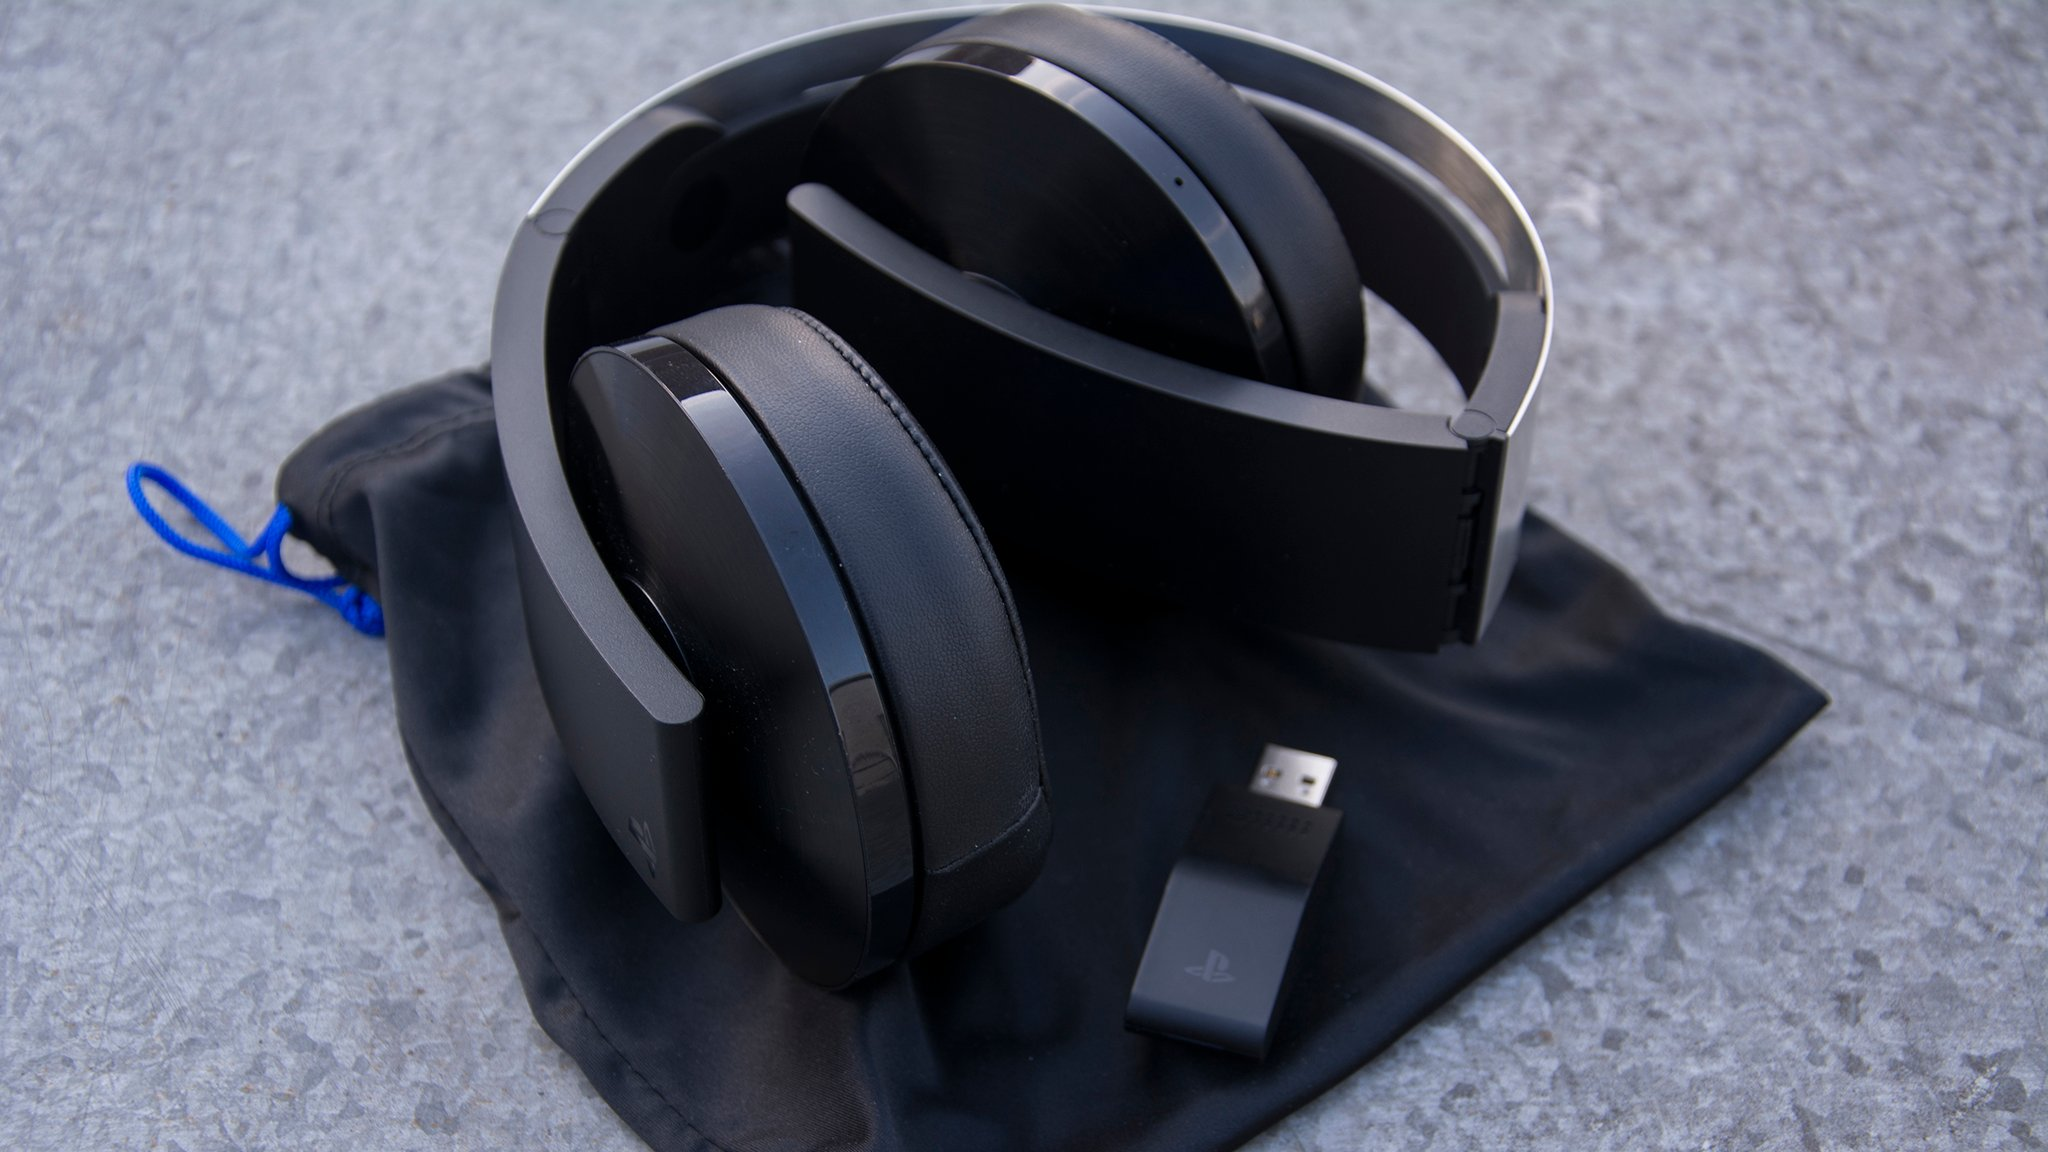 Playstation Platinum Wireless Headset Review Is This The Best Ps4 Headset Money Can Buy Expert Reviews